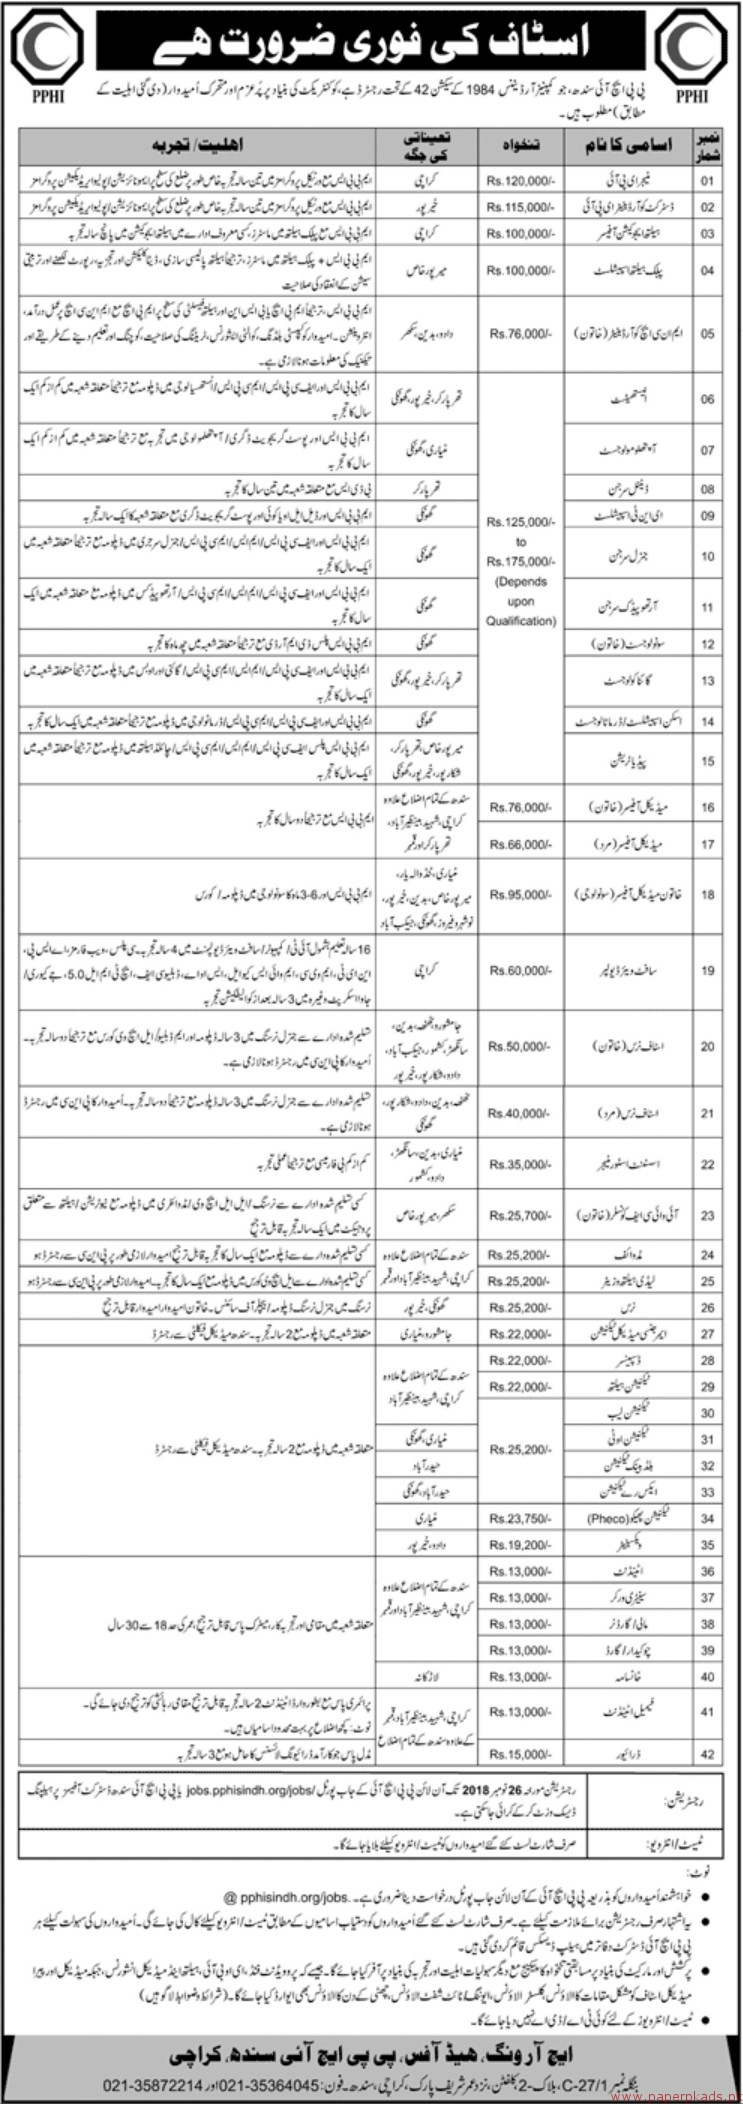 PPHI Sindh Jobs 2018 Latest